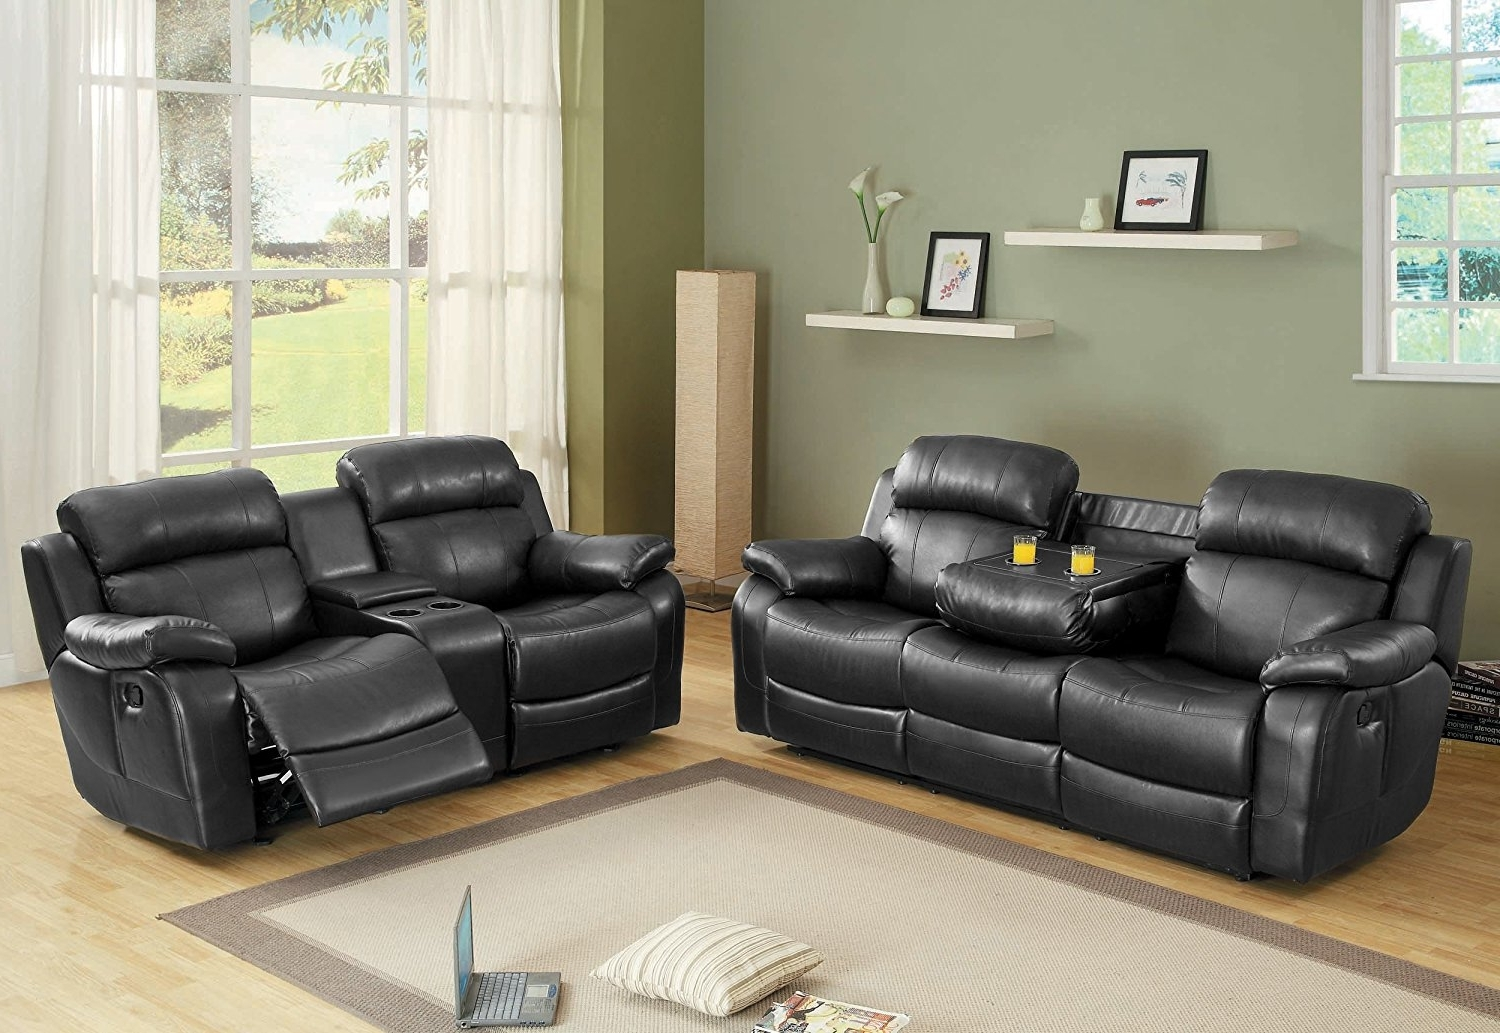 Sofas With Consoles Regarding Trendy Amazon: Homelegance Marille Reclining Sofa W/ Center Console (View 13 of 15)